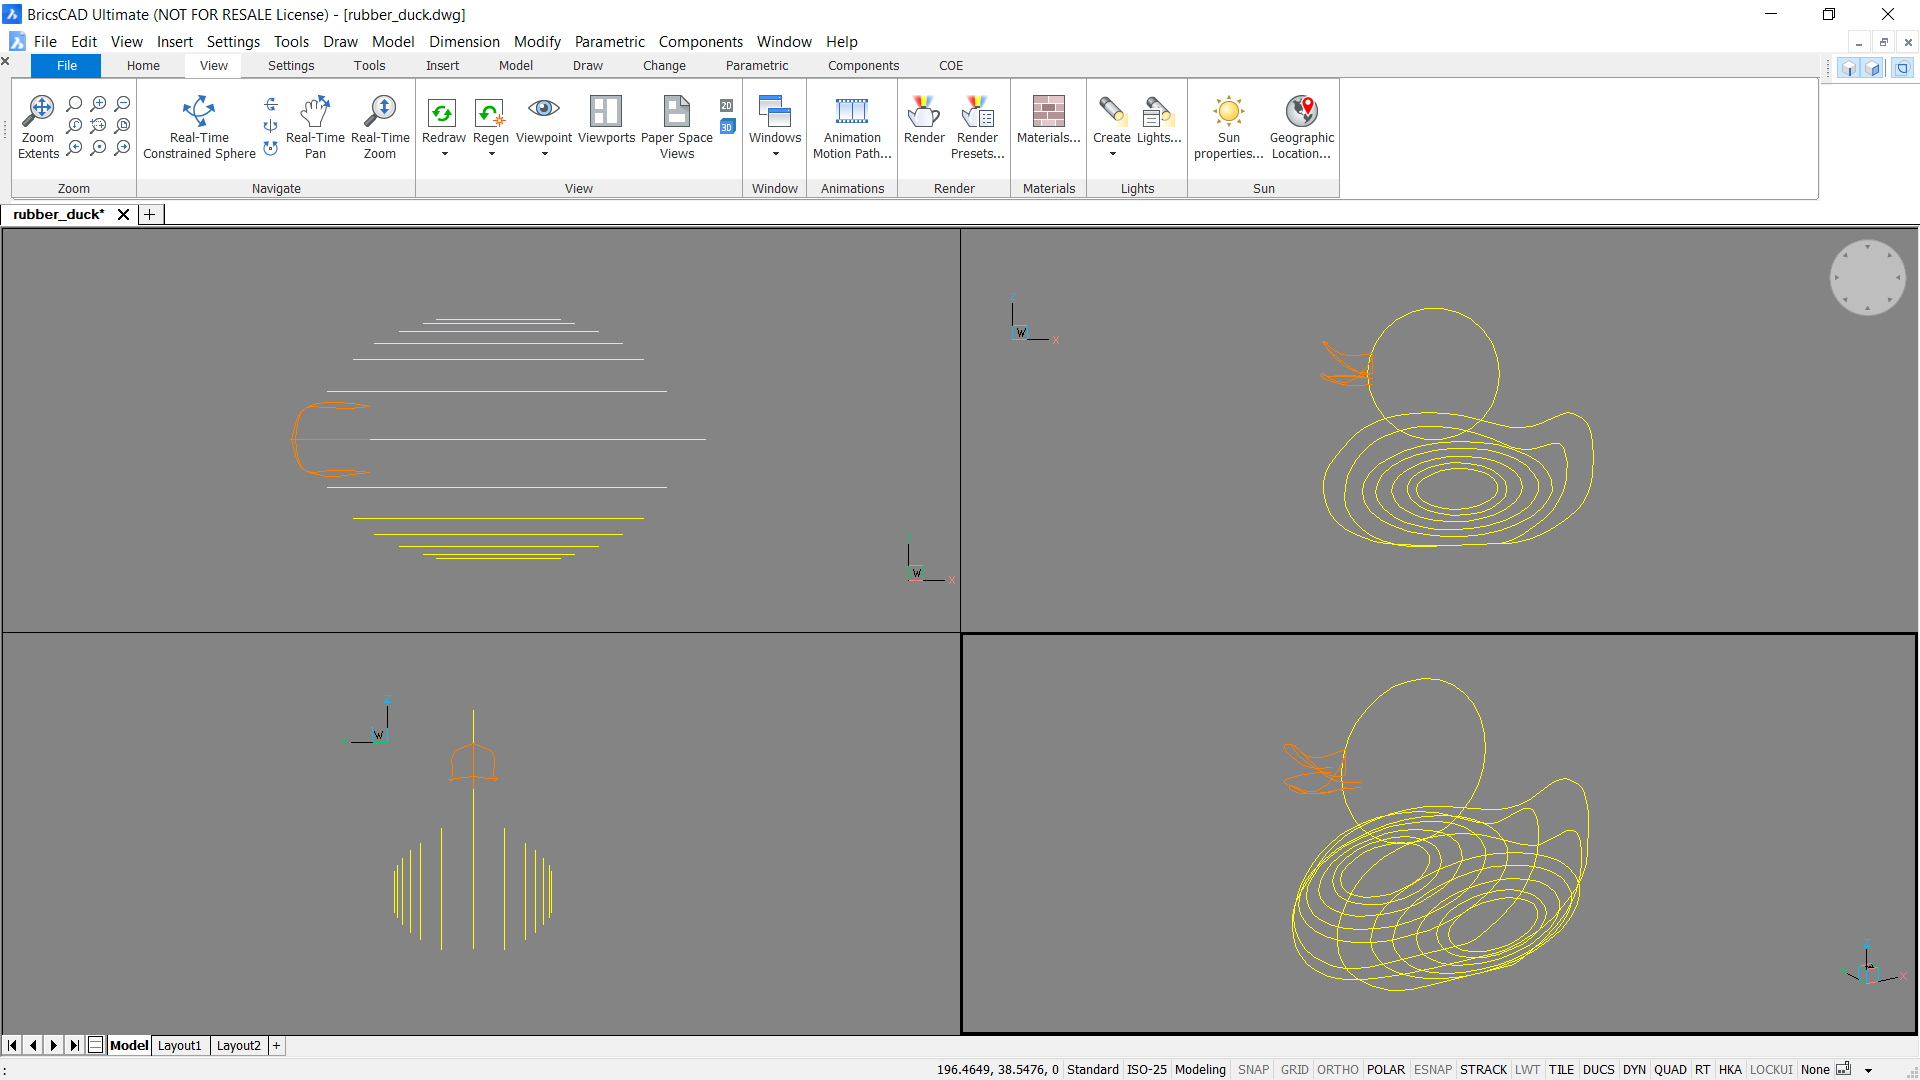 wireframe how to make a rubber duck in CAD rhino BricsCAD